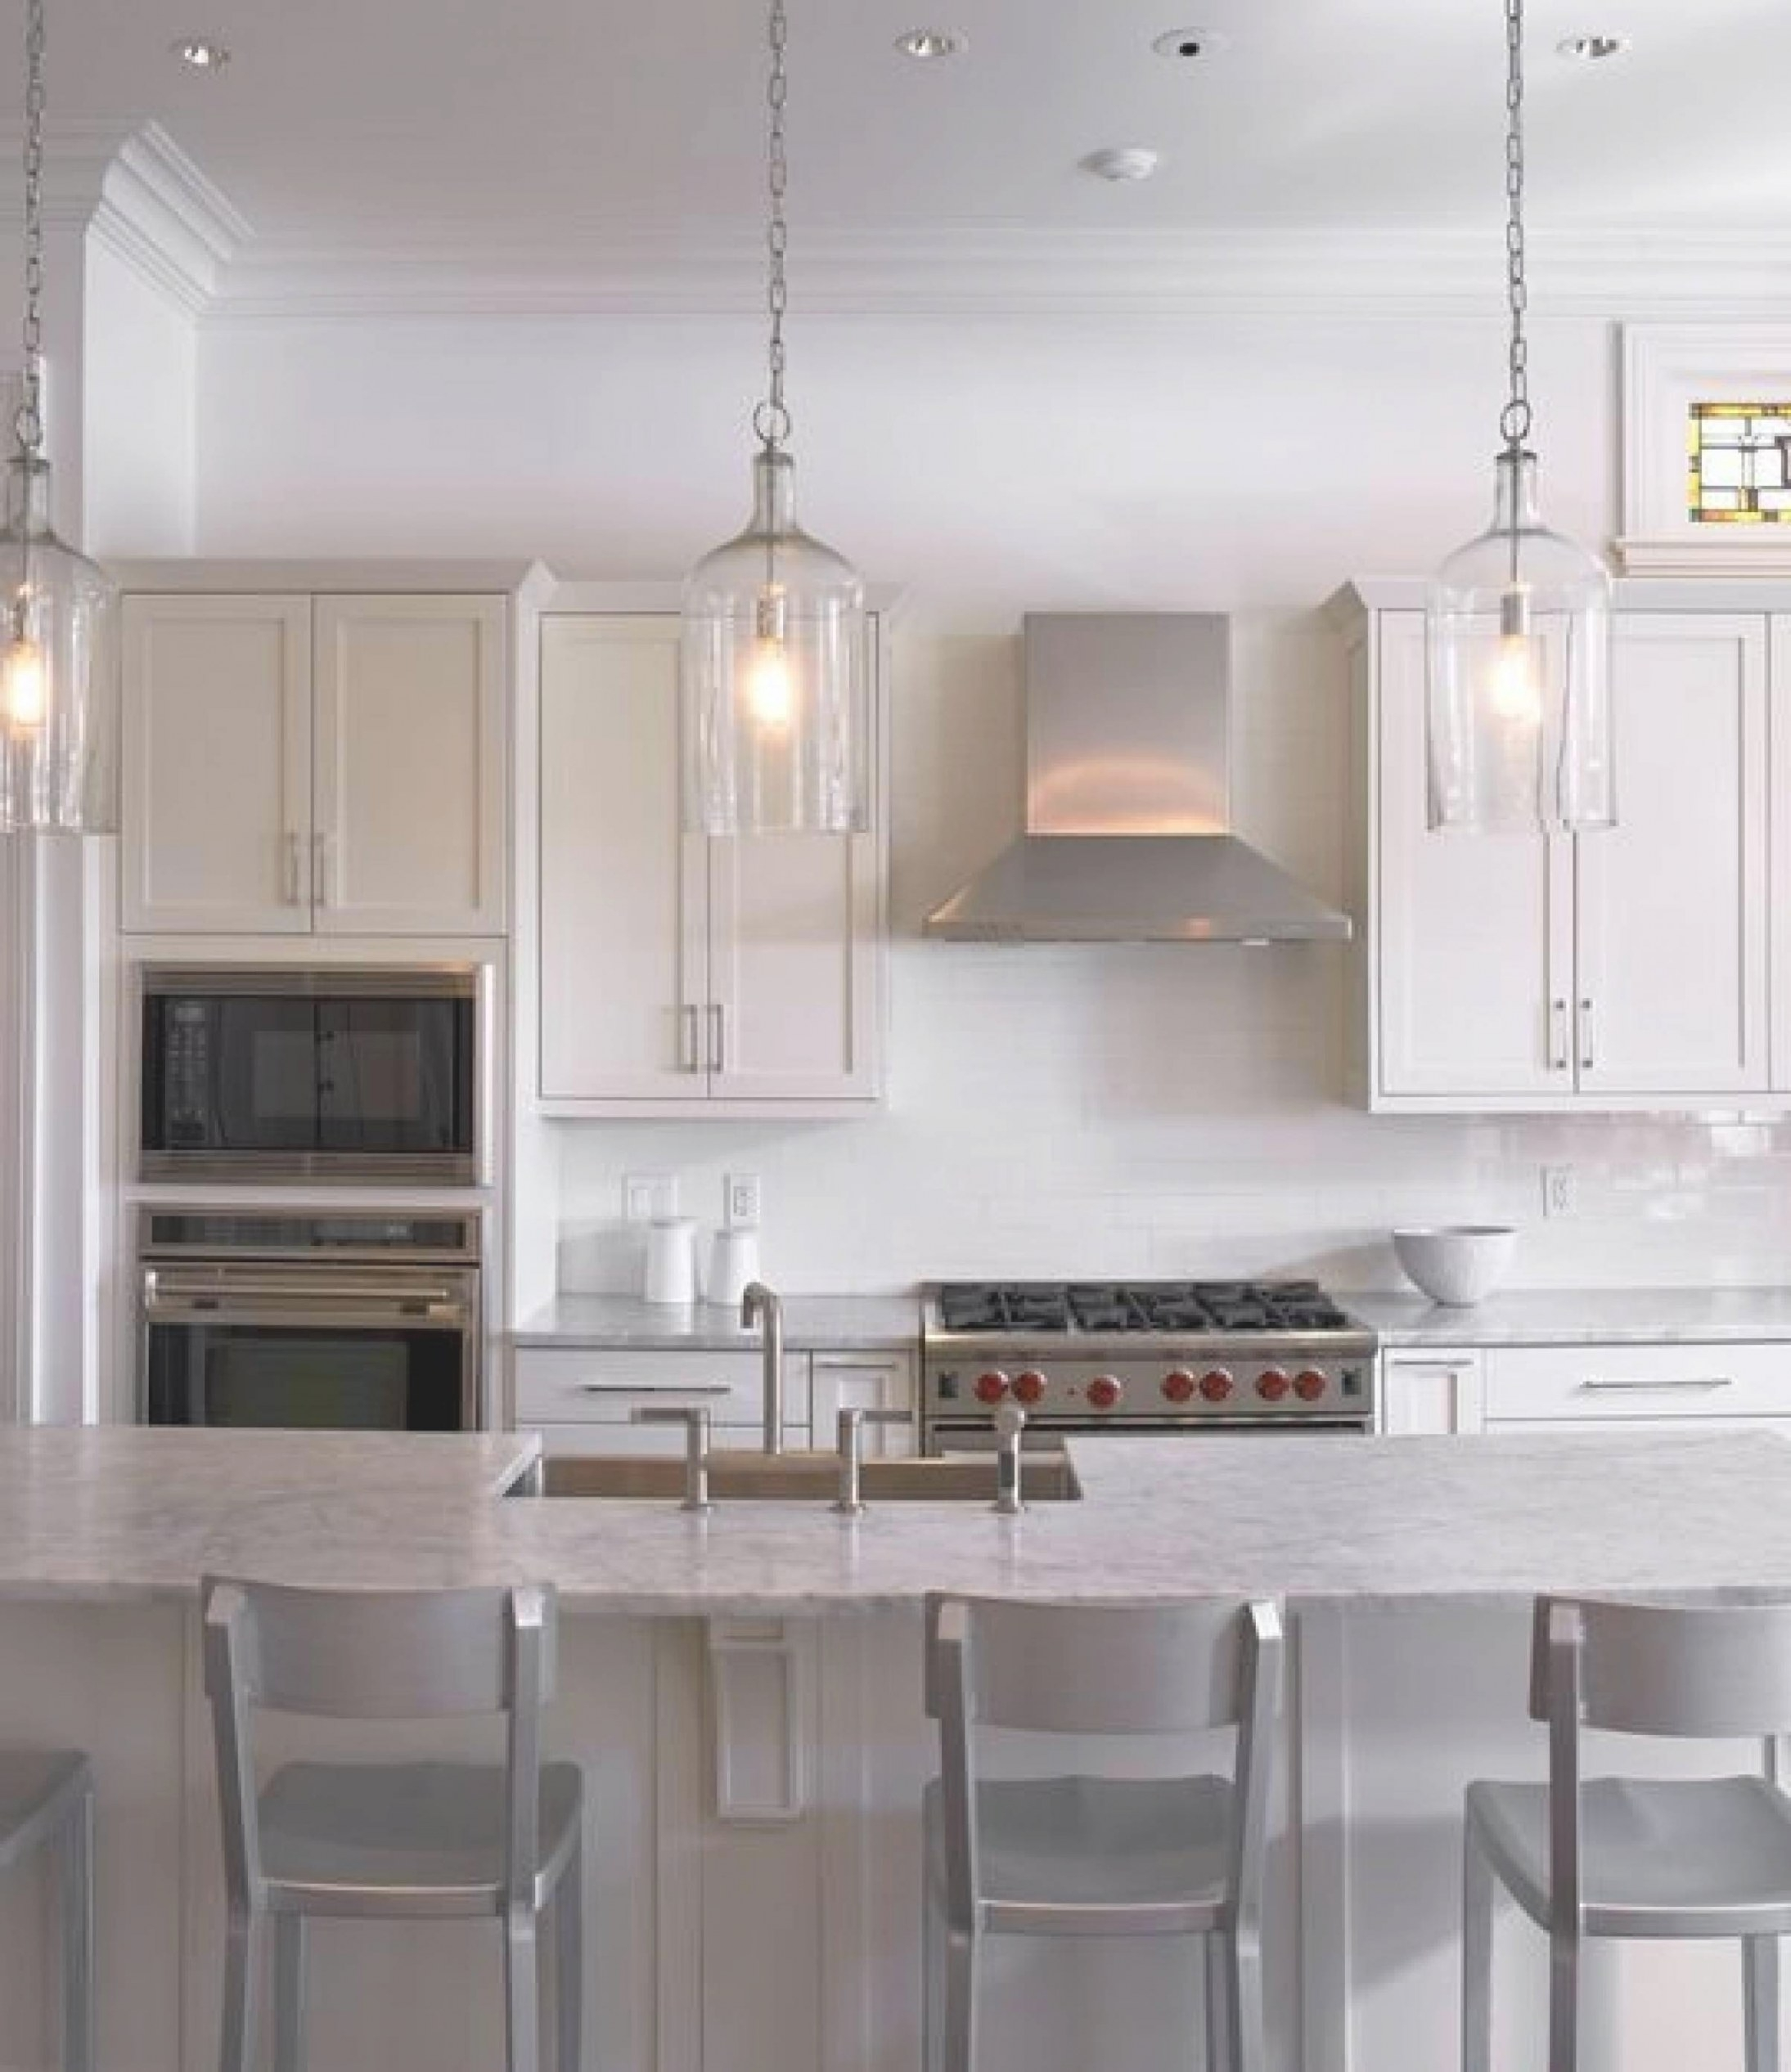 15 Best Collection Of Pendant Lighting Over Island throughout Kitchen Island Pendant Lighting